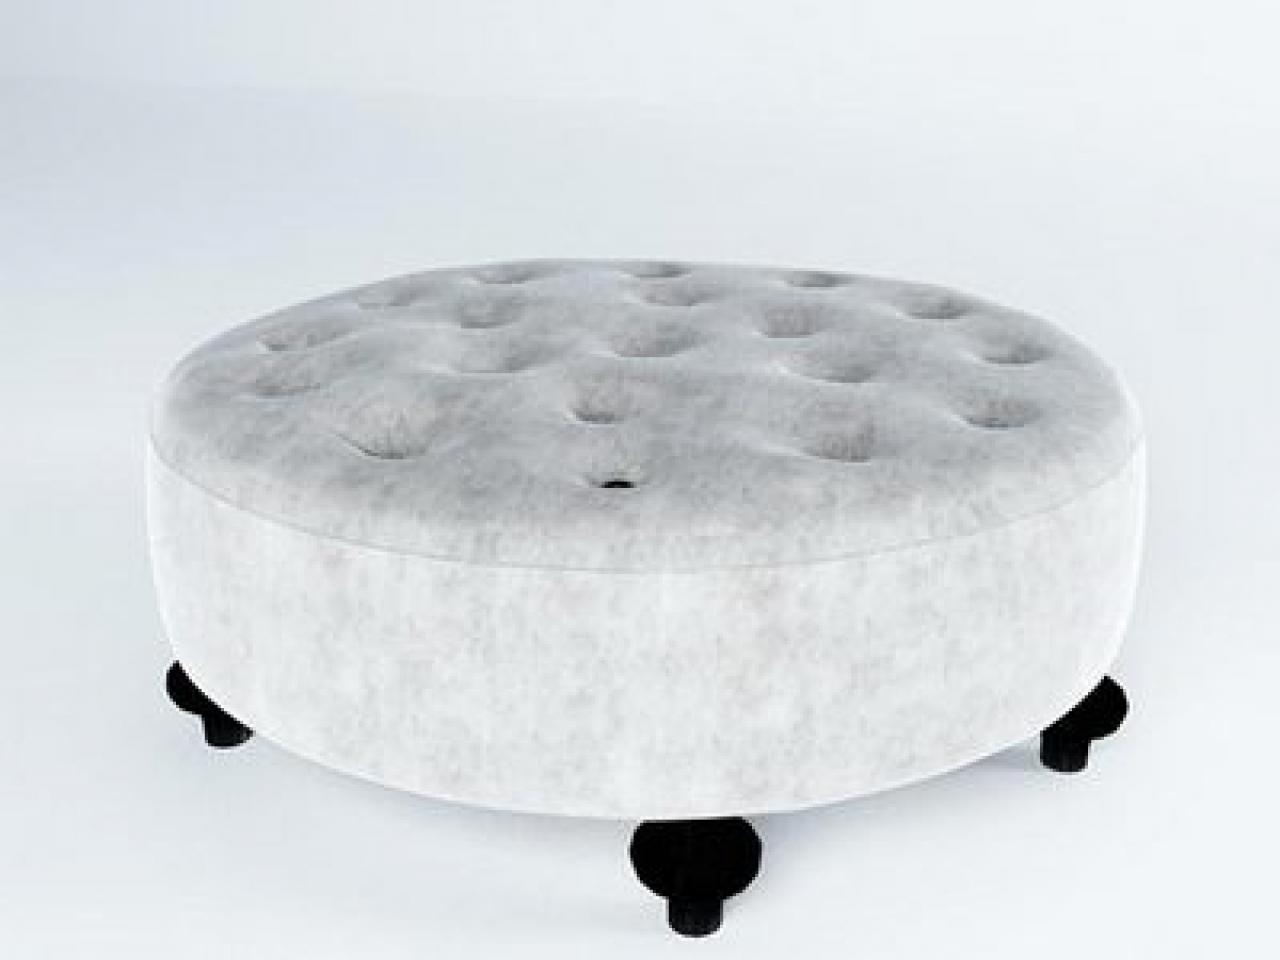 Sofa Round Chair Ikea For Sale Harvey Norman Living Room Furniture With Regard To Round Sofa Chair (View 5 of 20)